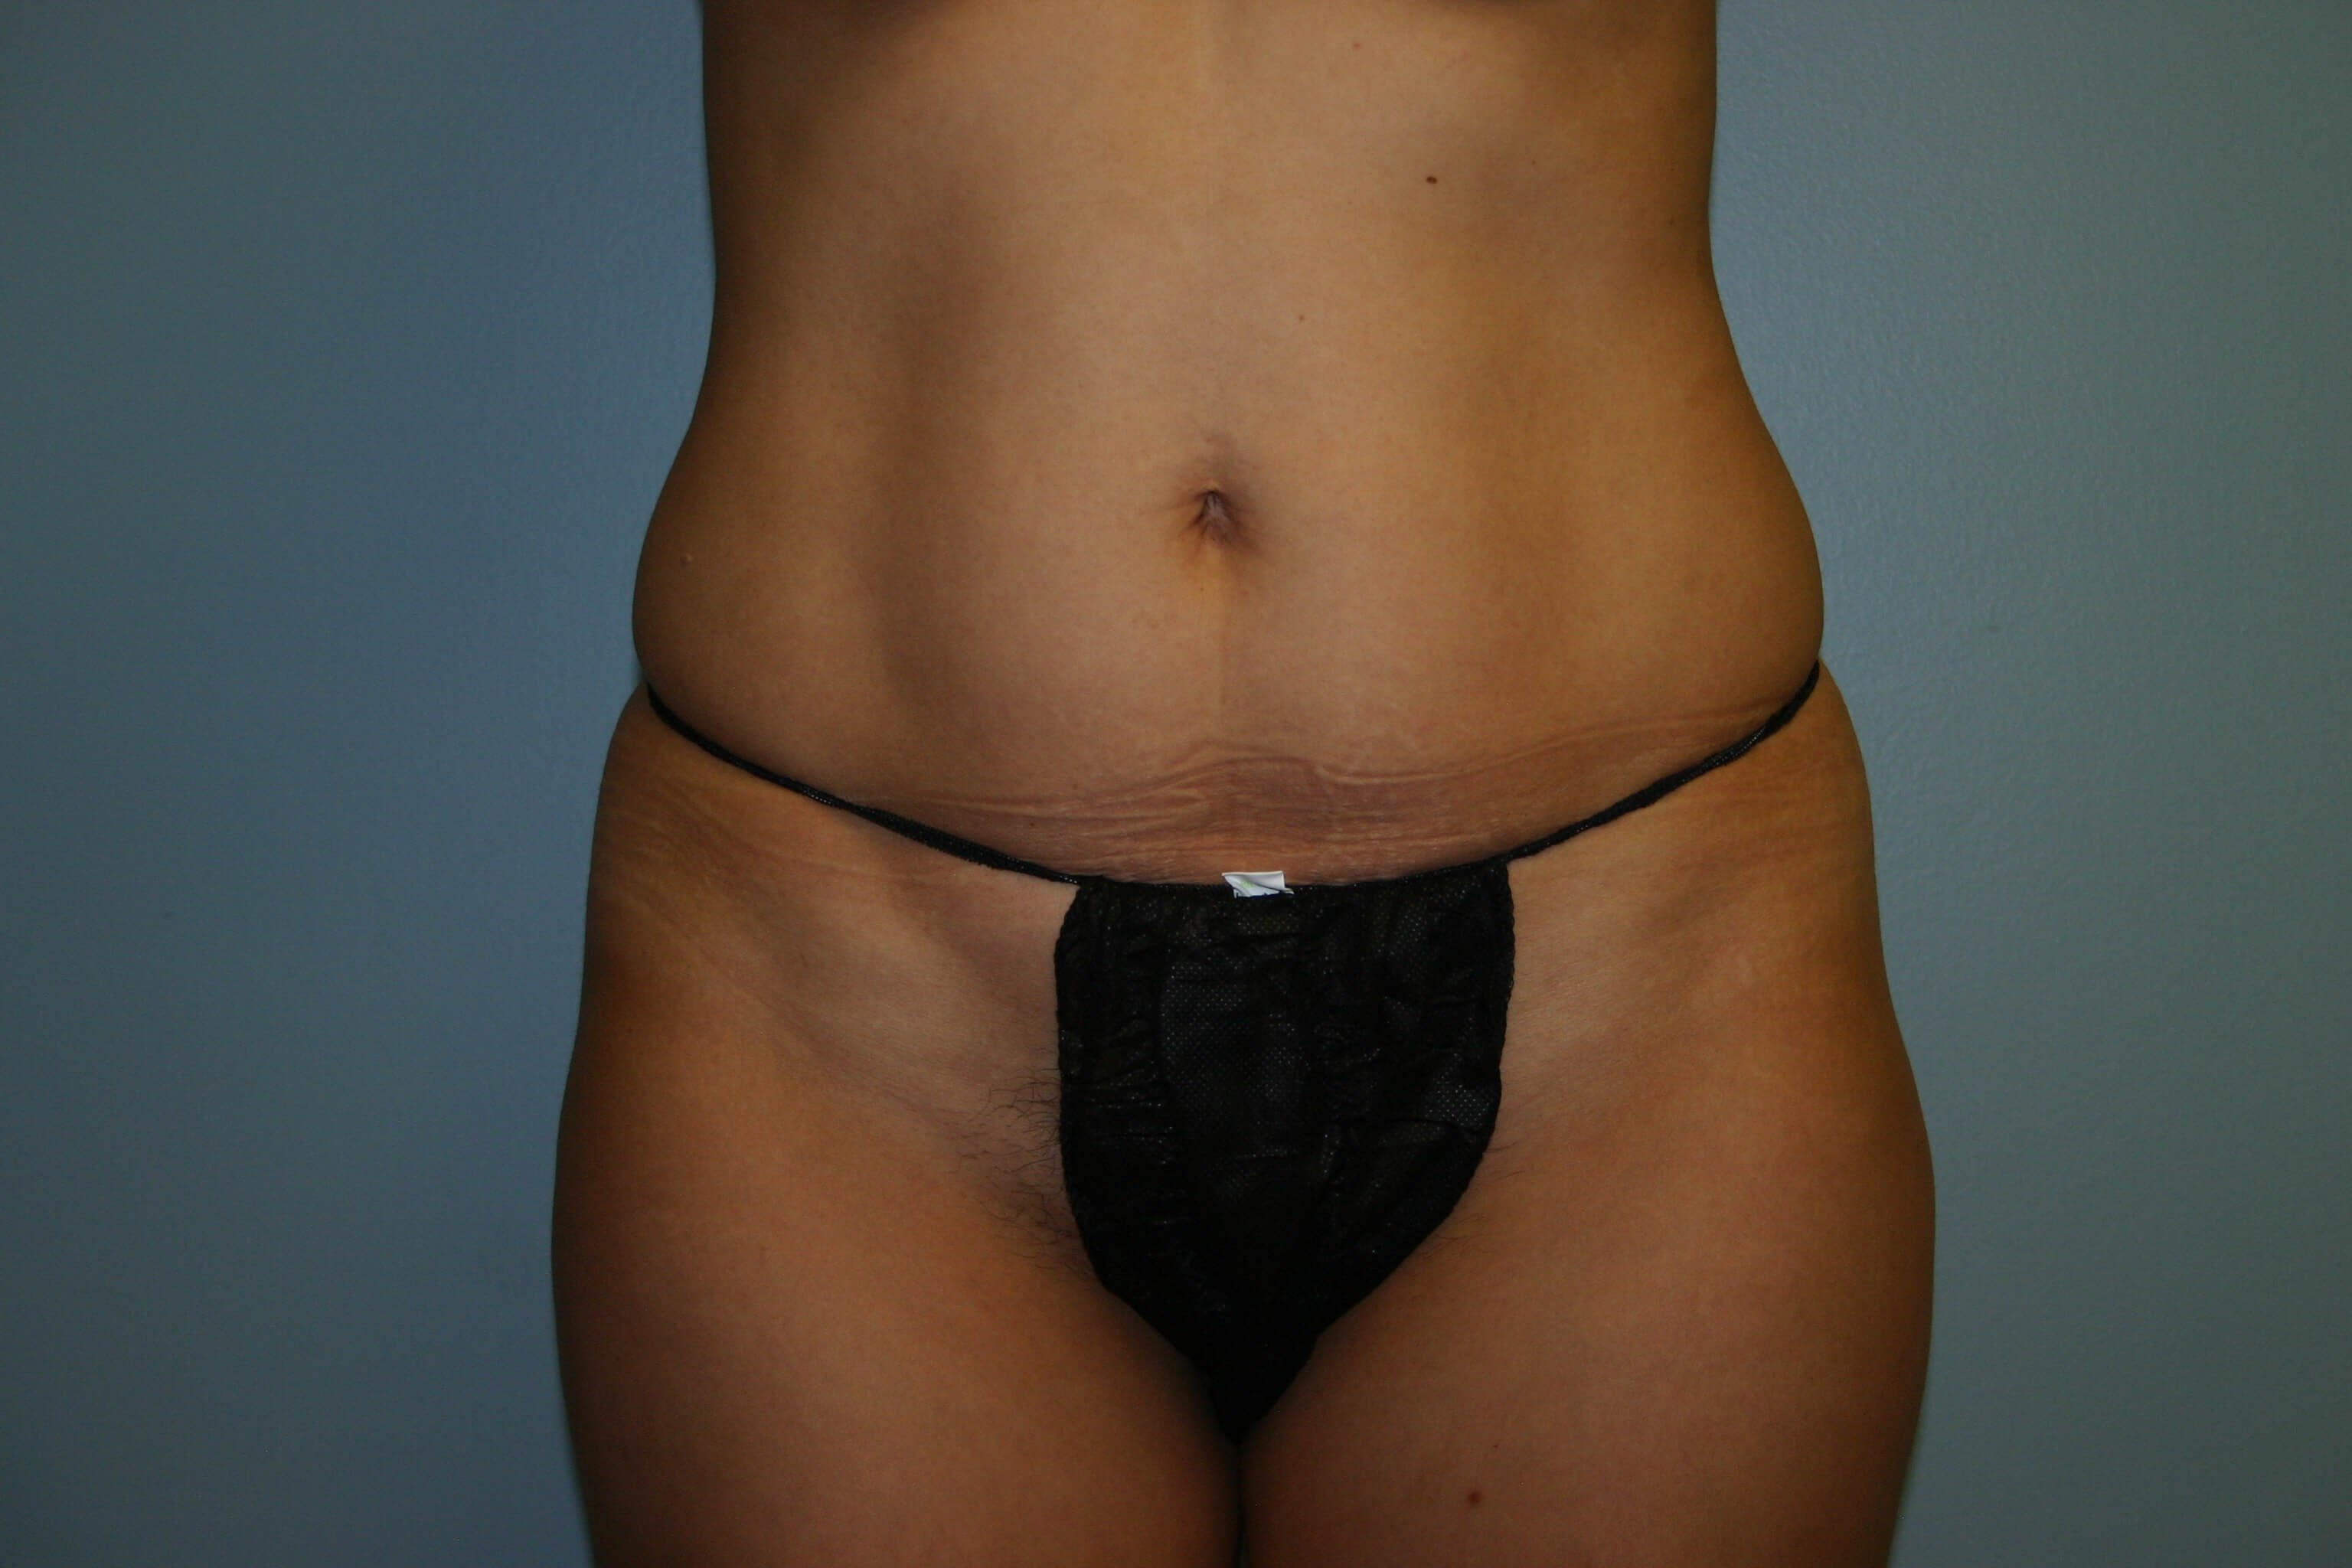 View 1 Before